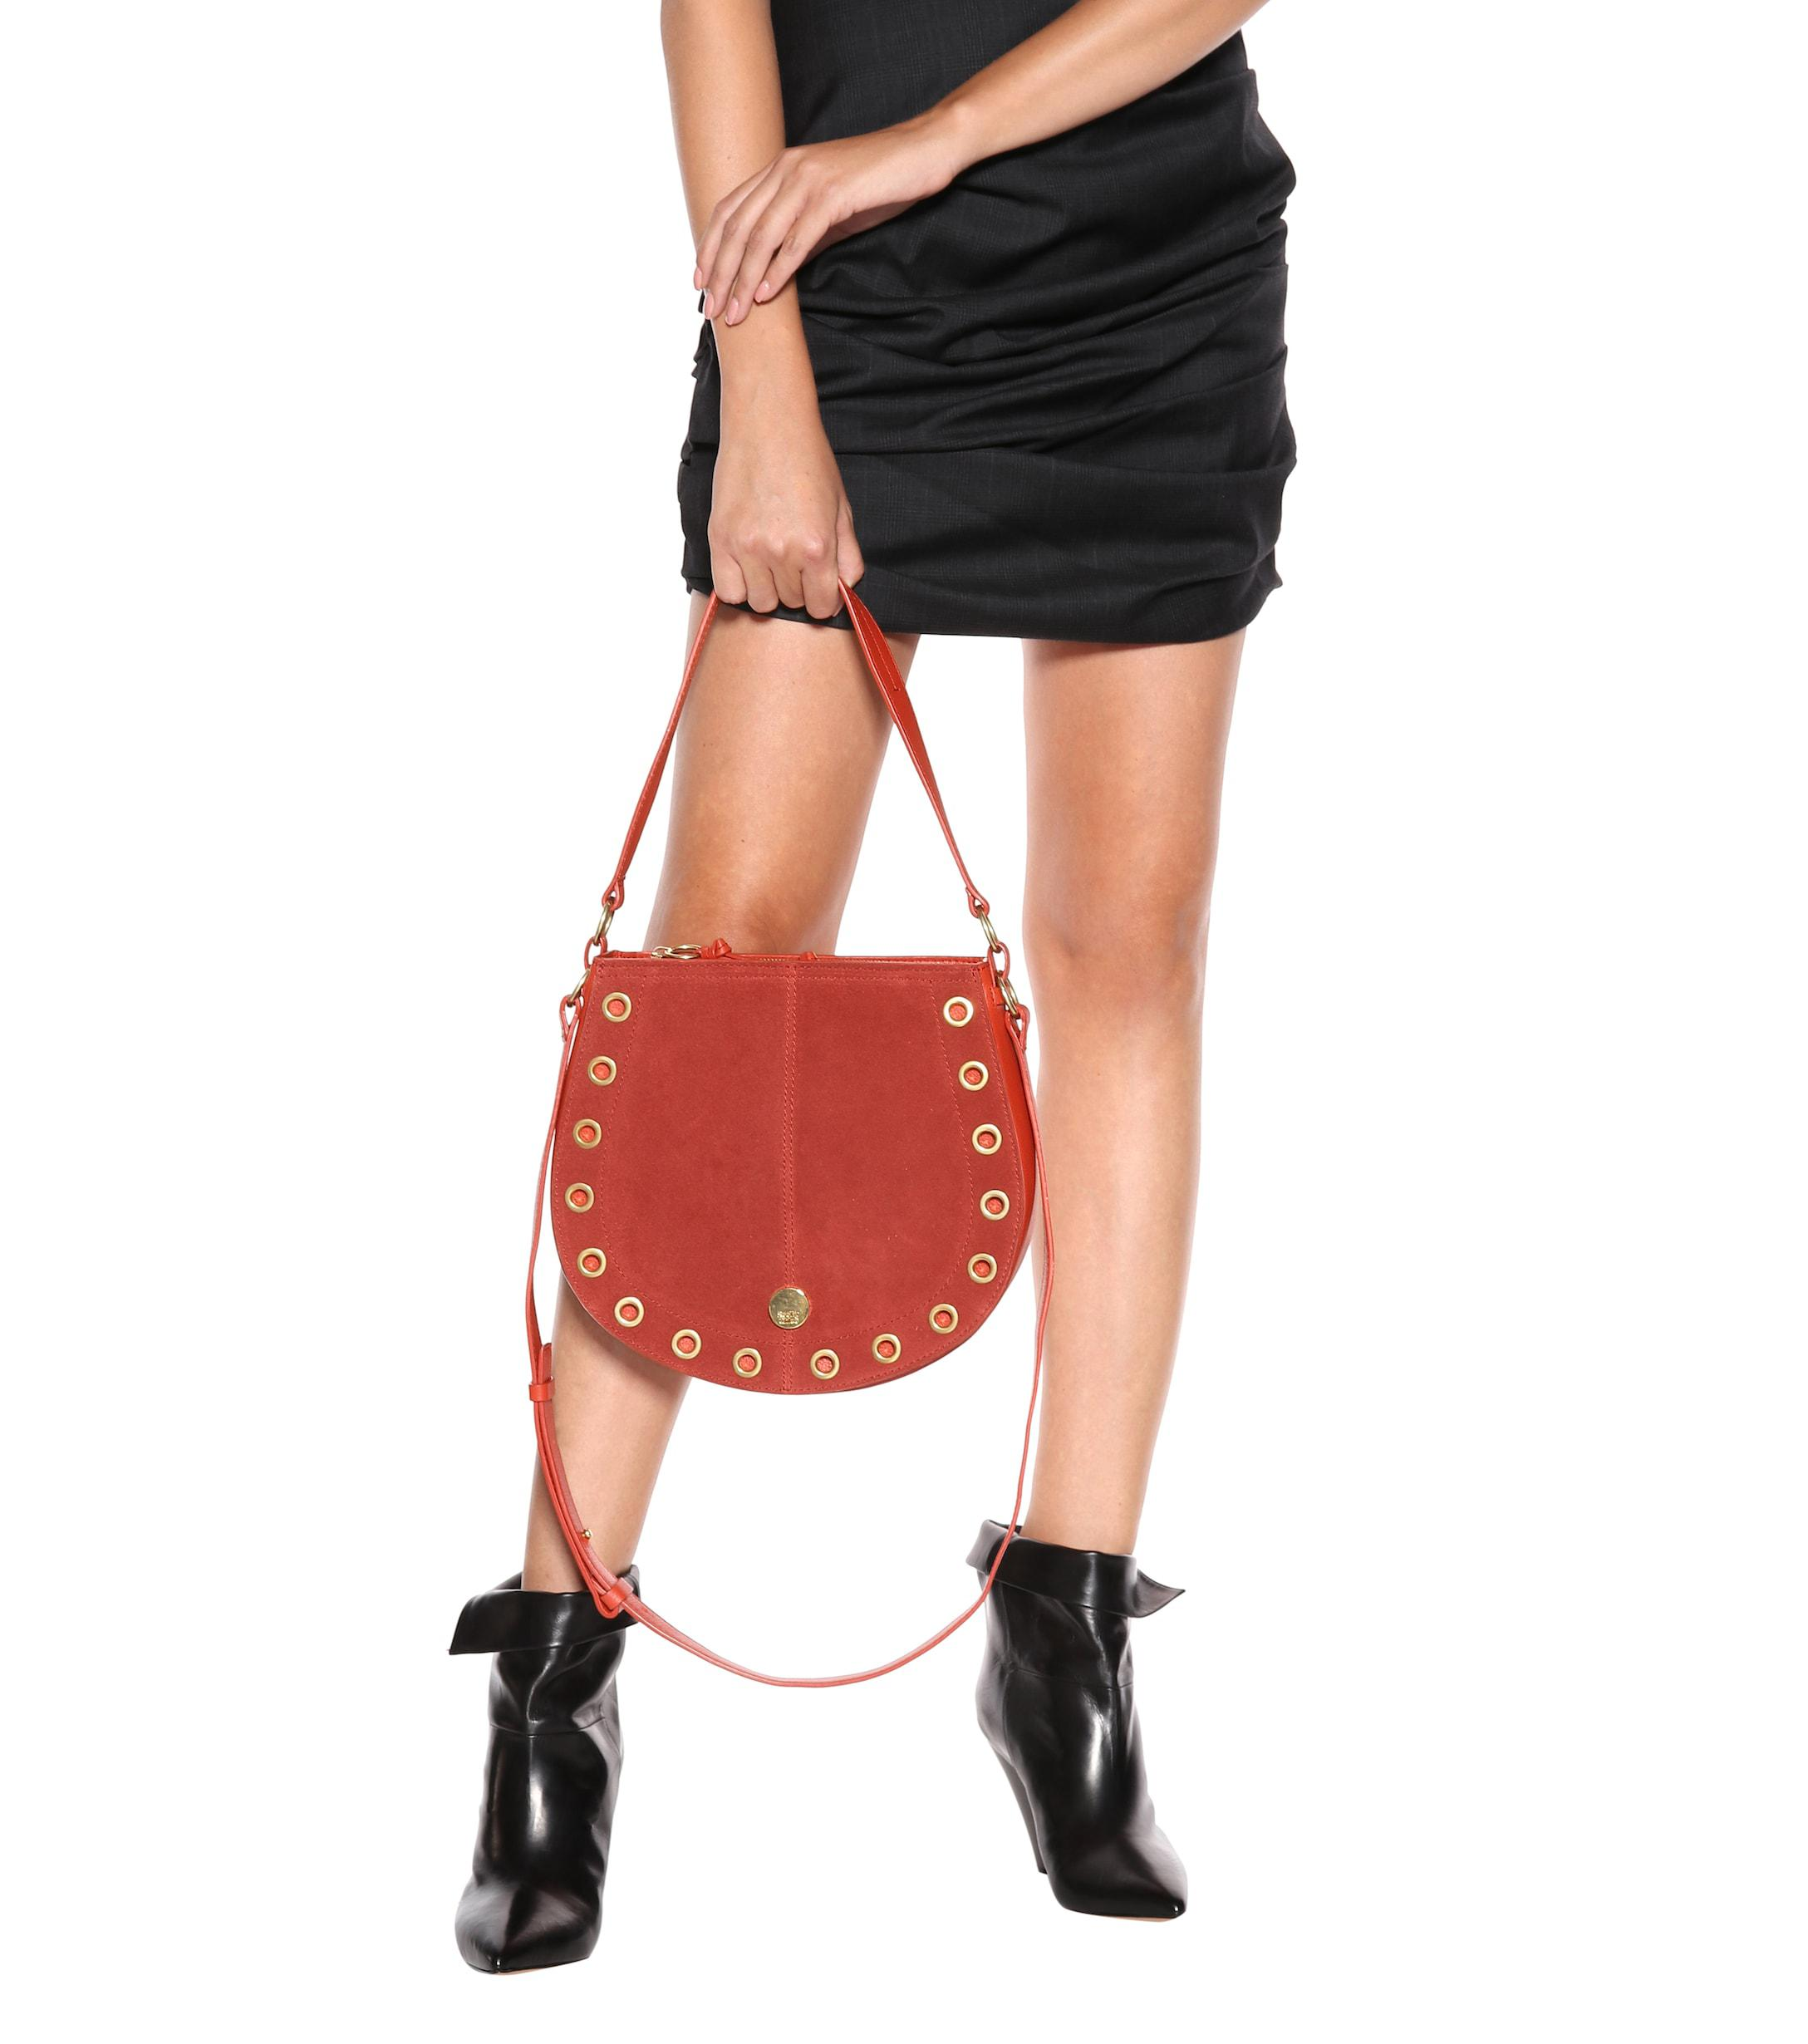 f1937f4d6c See By Chloé Medium Kriss Leather Shoulder Bag in Red - Lyst